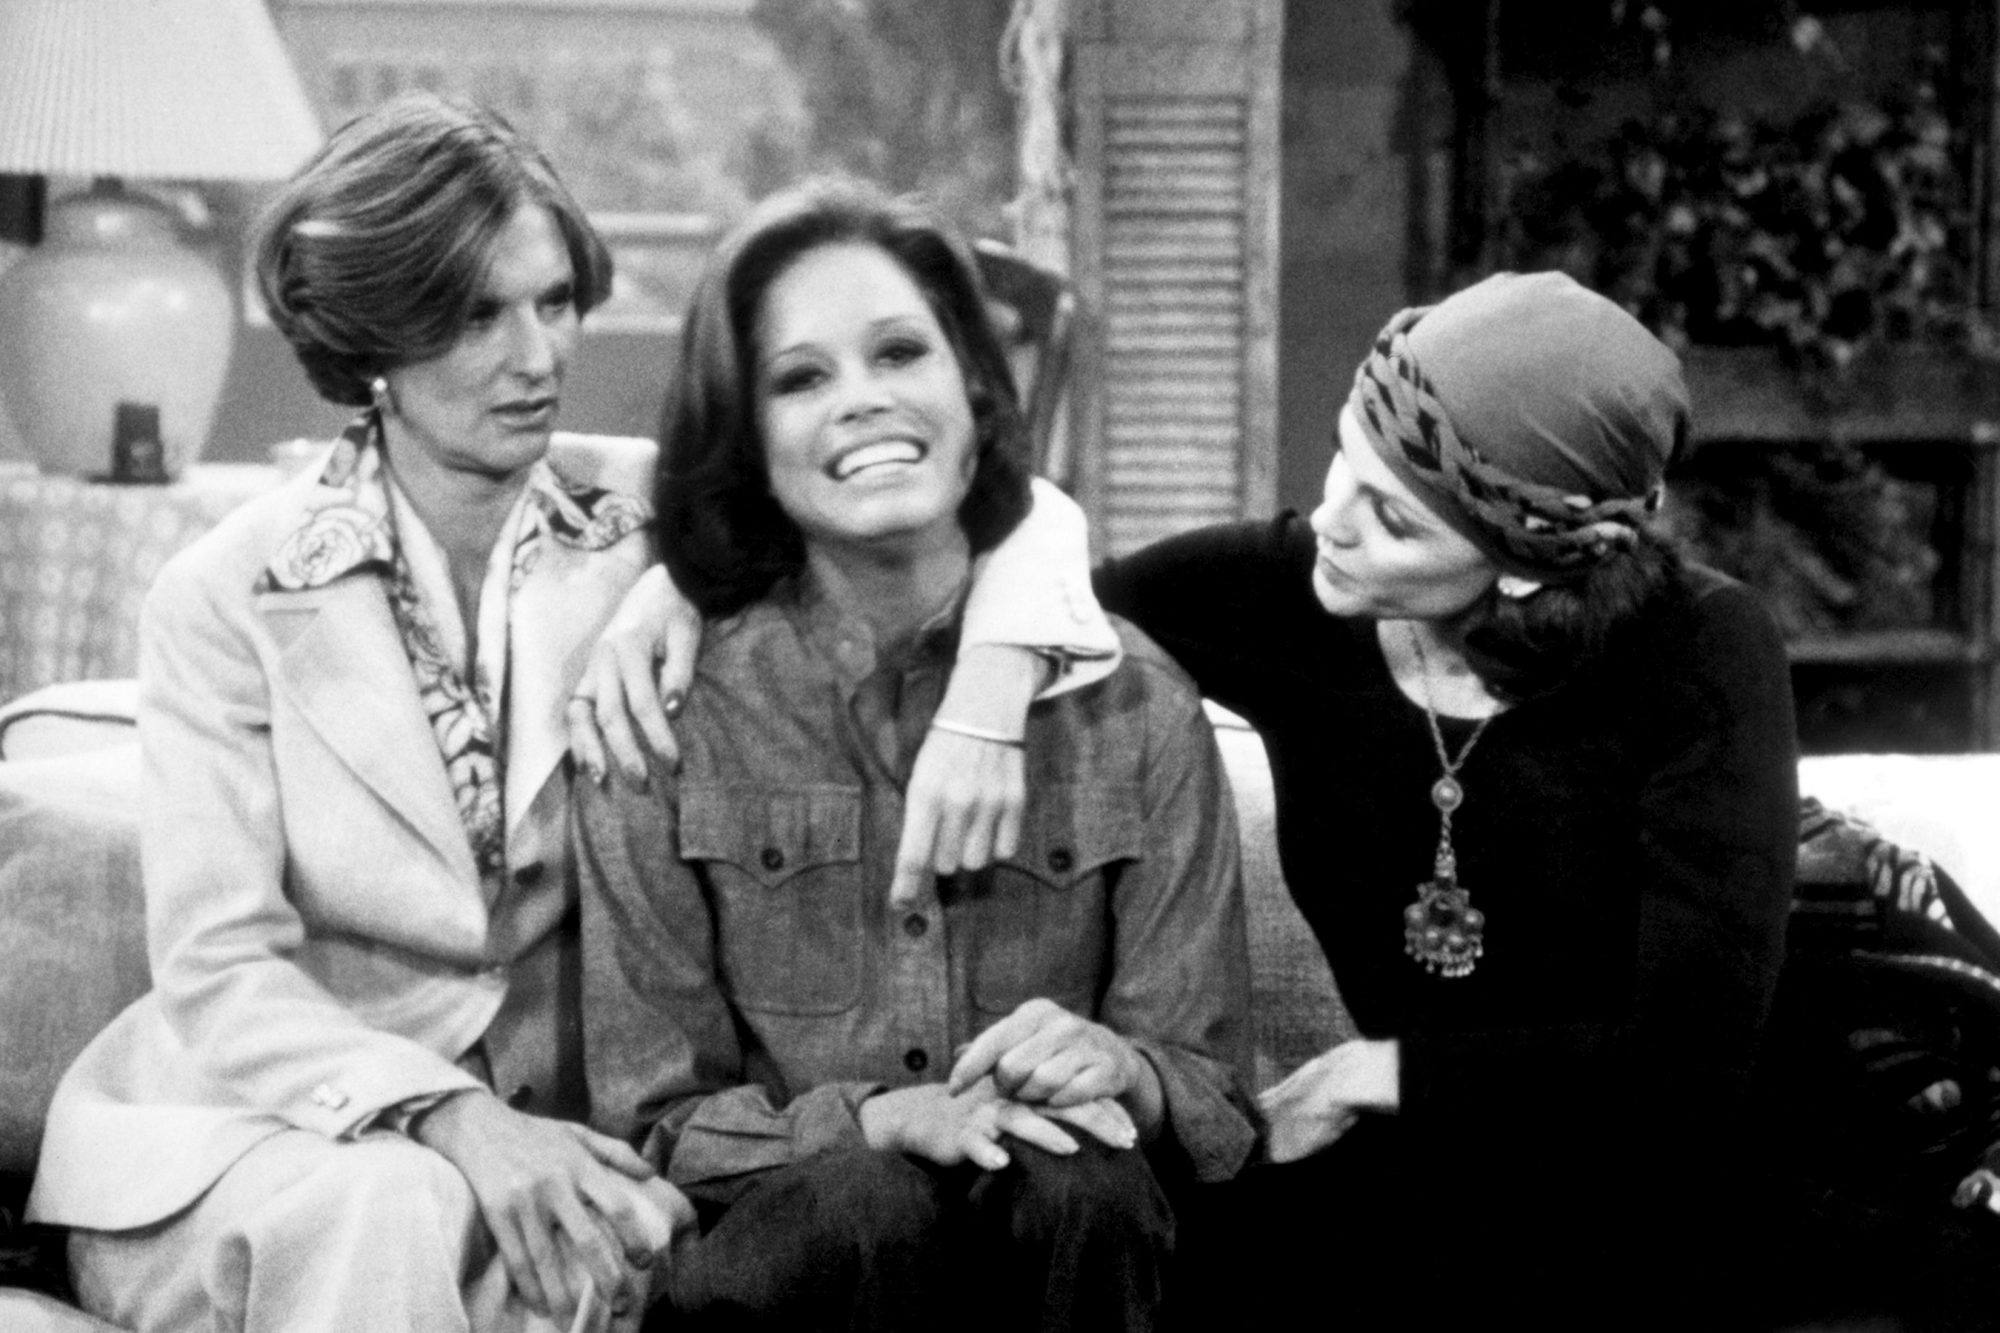 MARY TYLER MOORE SHOW, Cloris Leachman, Mary Tyler Moore, Valerie Harper, 1970-1977